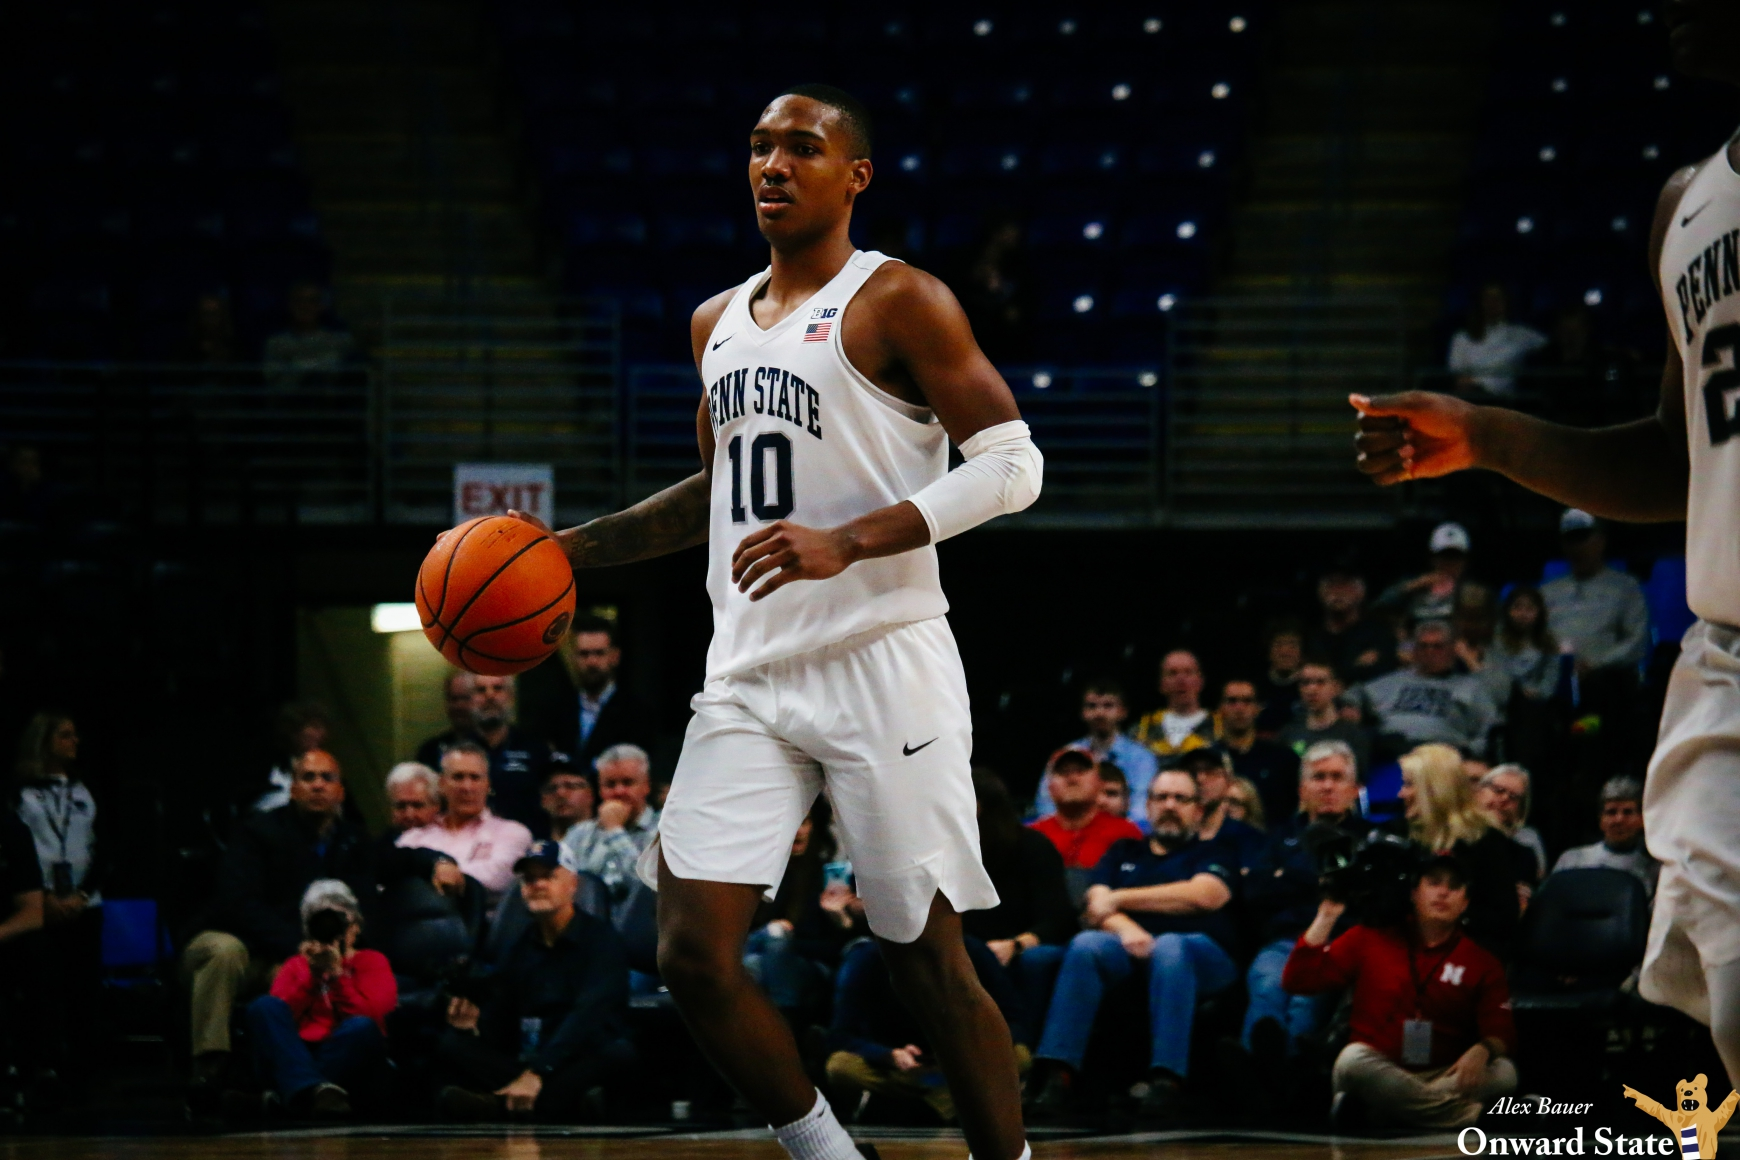 Penn State's Tony Carr is headed to the National Basketball Association